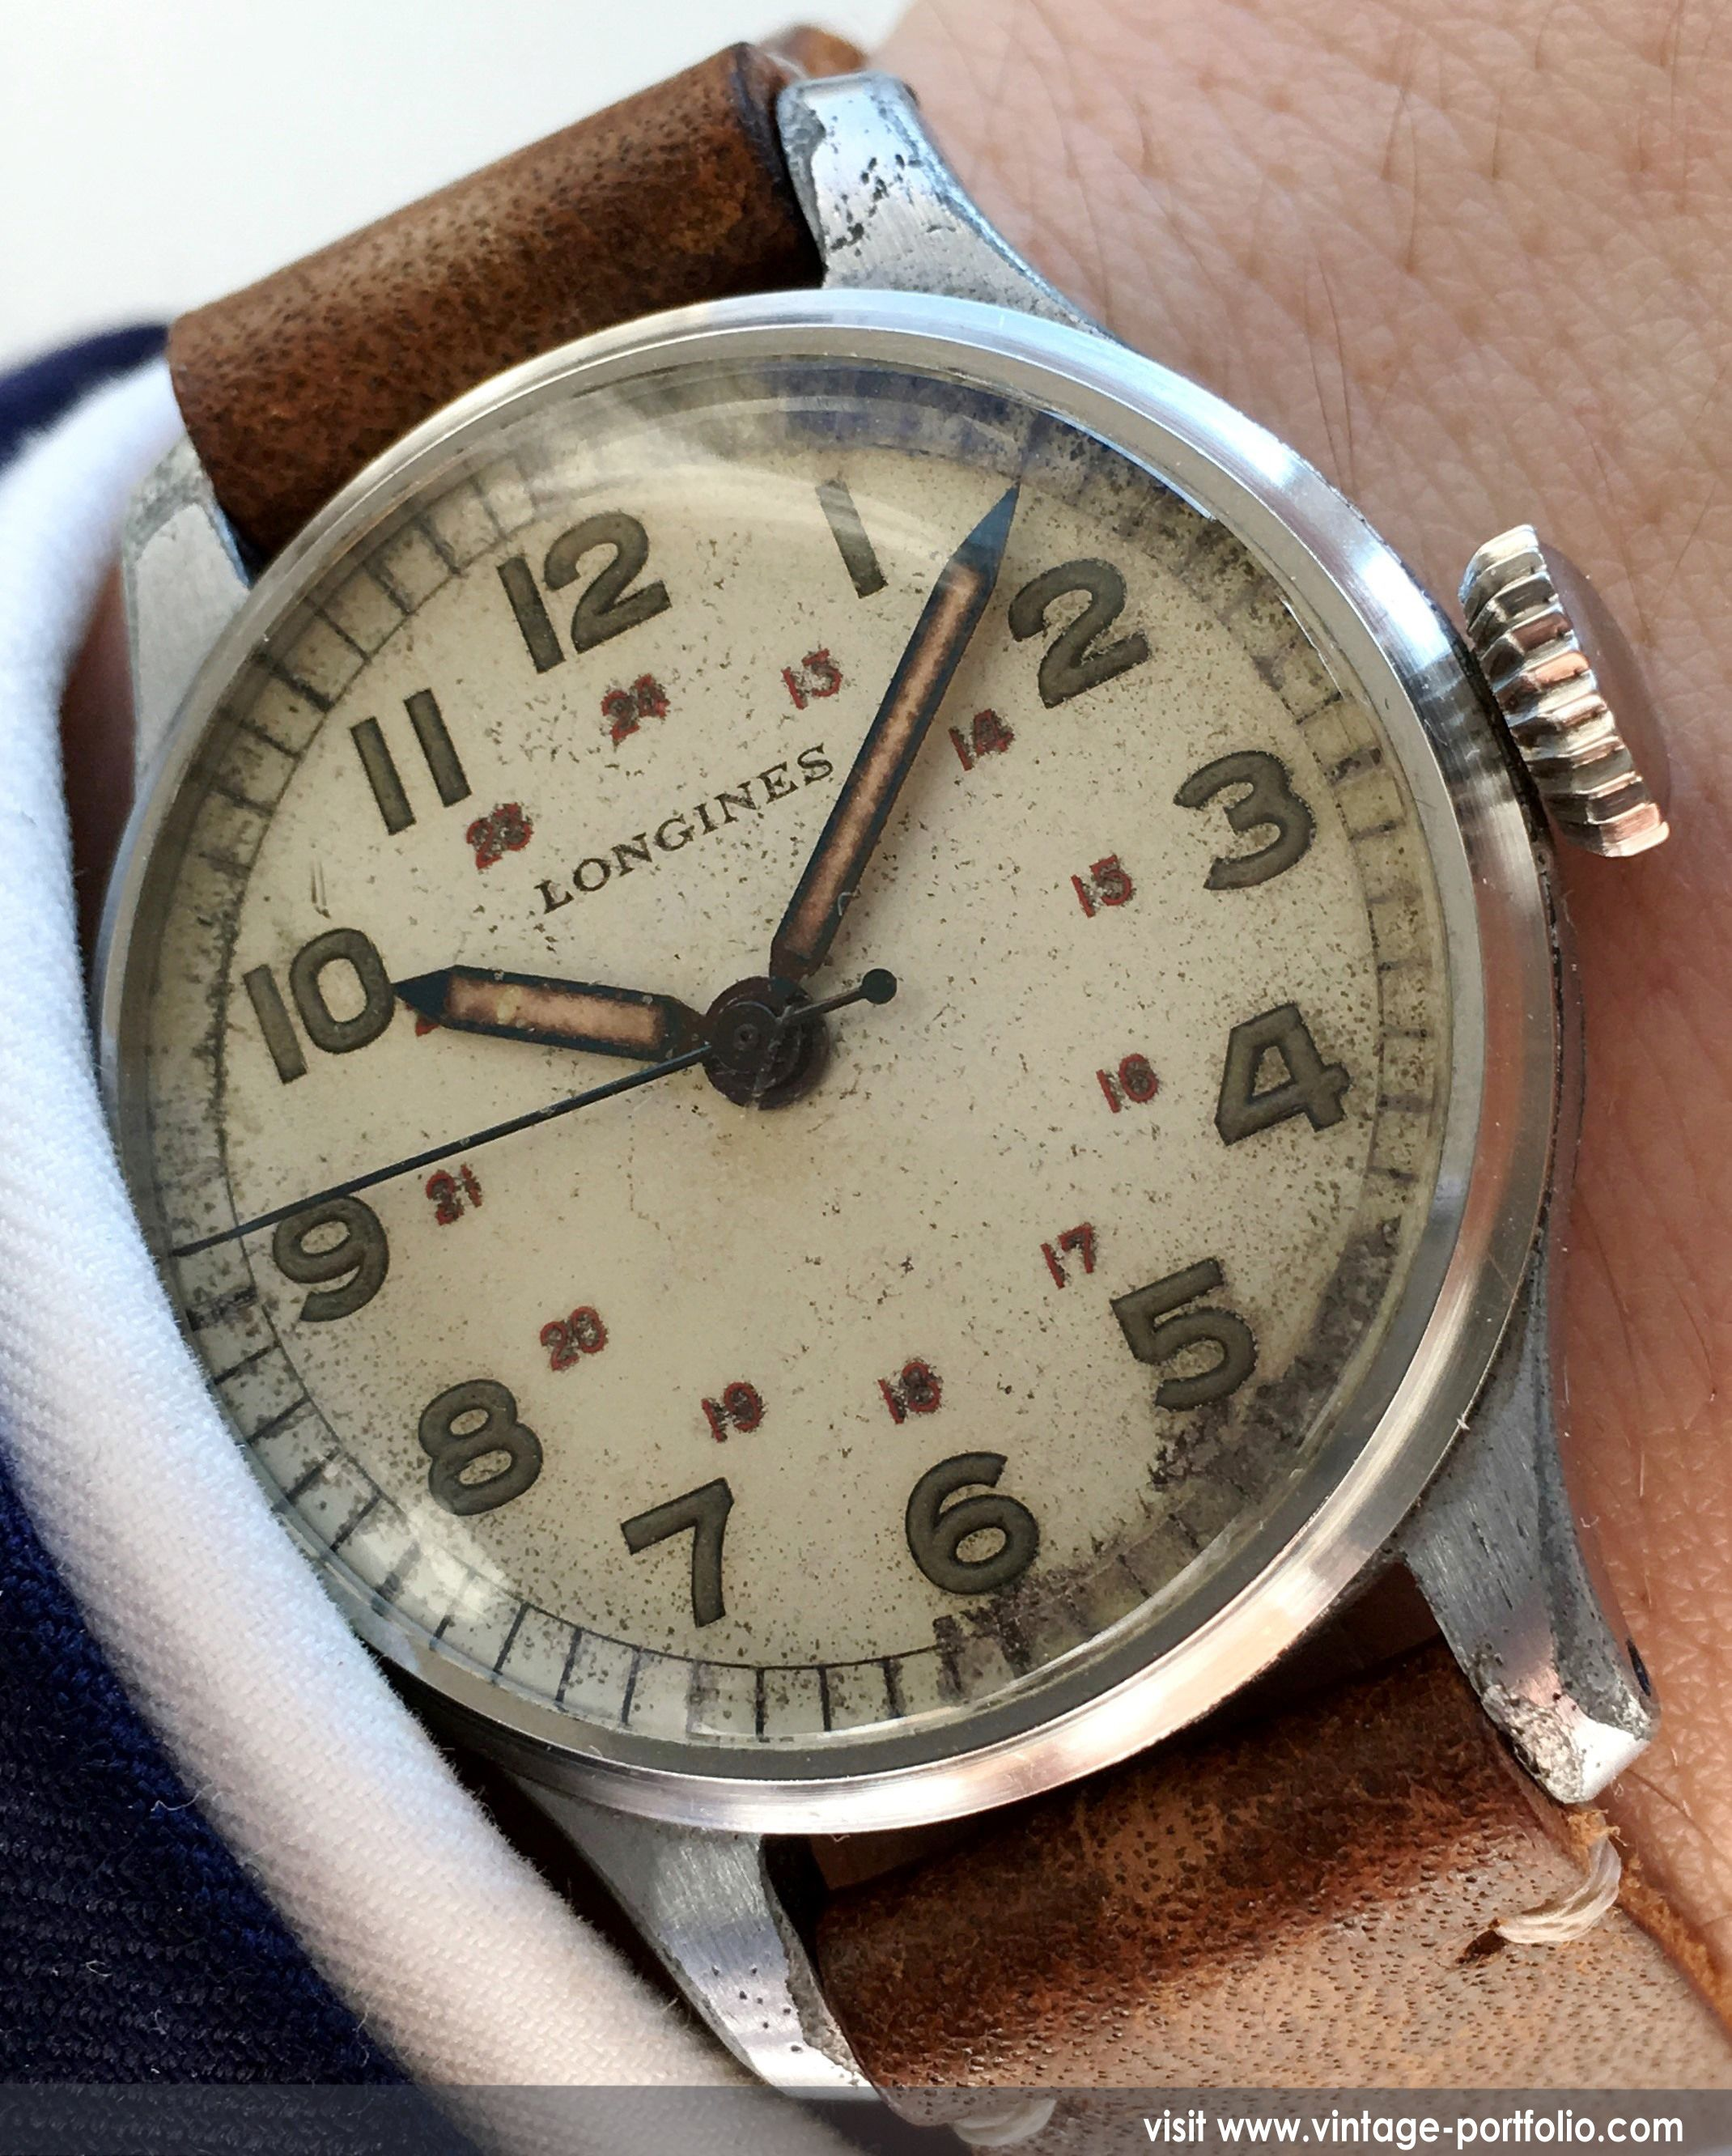 collections ss william this timepiece and movement the unconventional bl thanks vintage automatic dive retro en tribute lovers diver from by watches style l fully bd closeup its styling a is inspired to